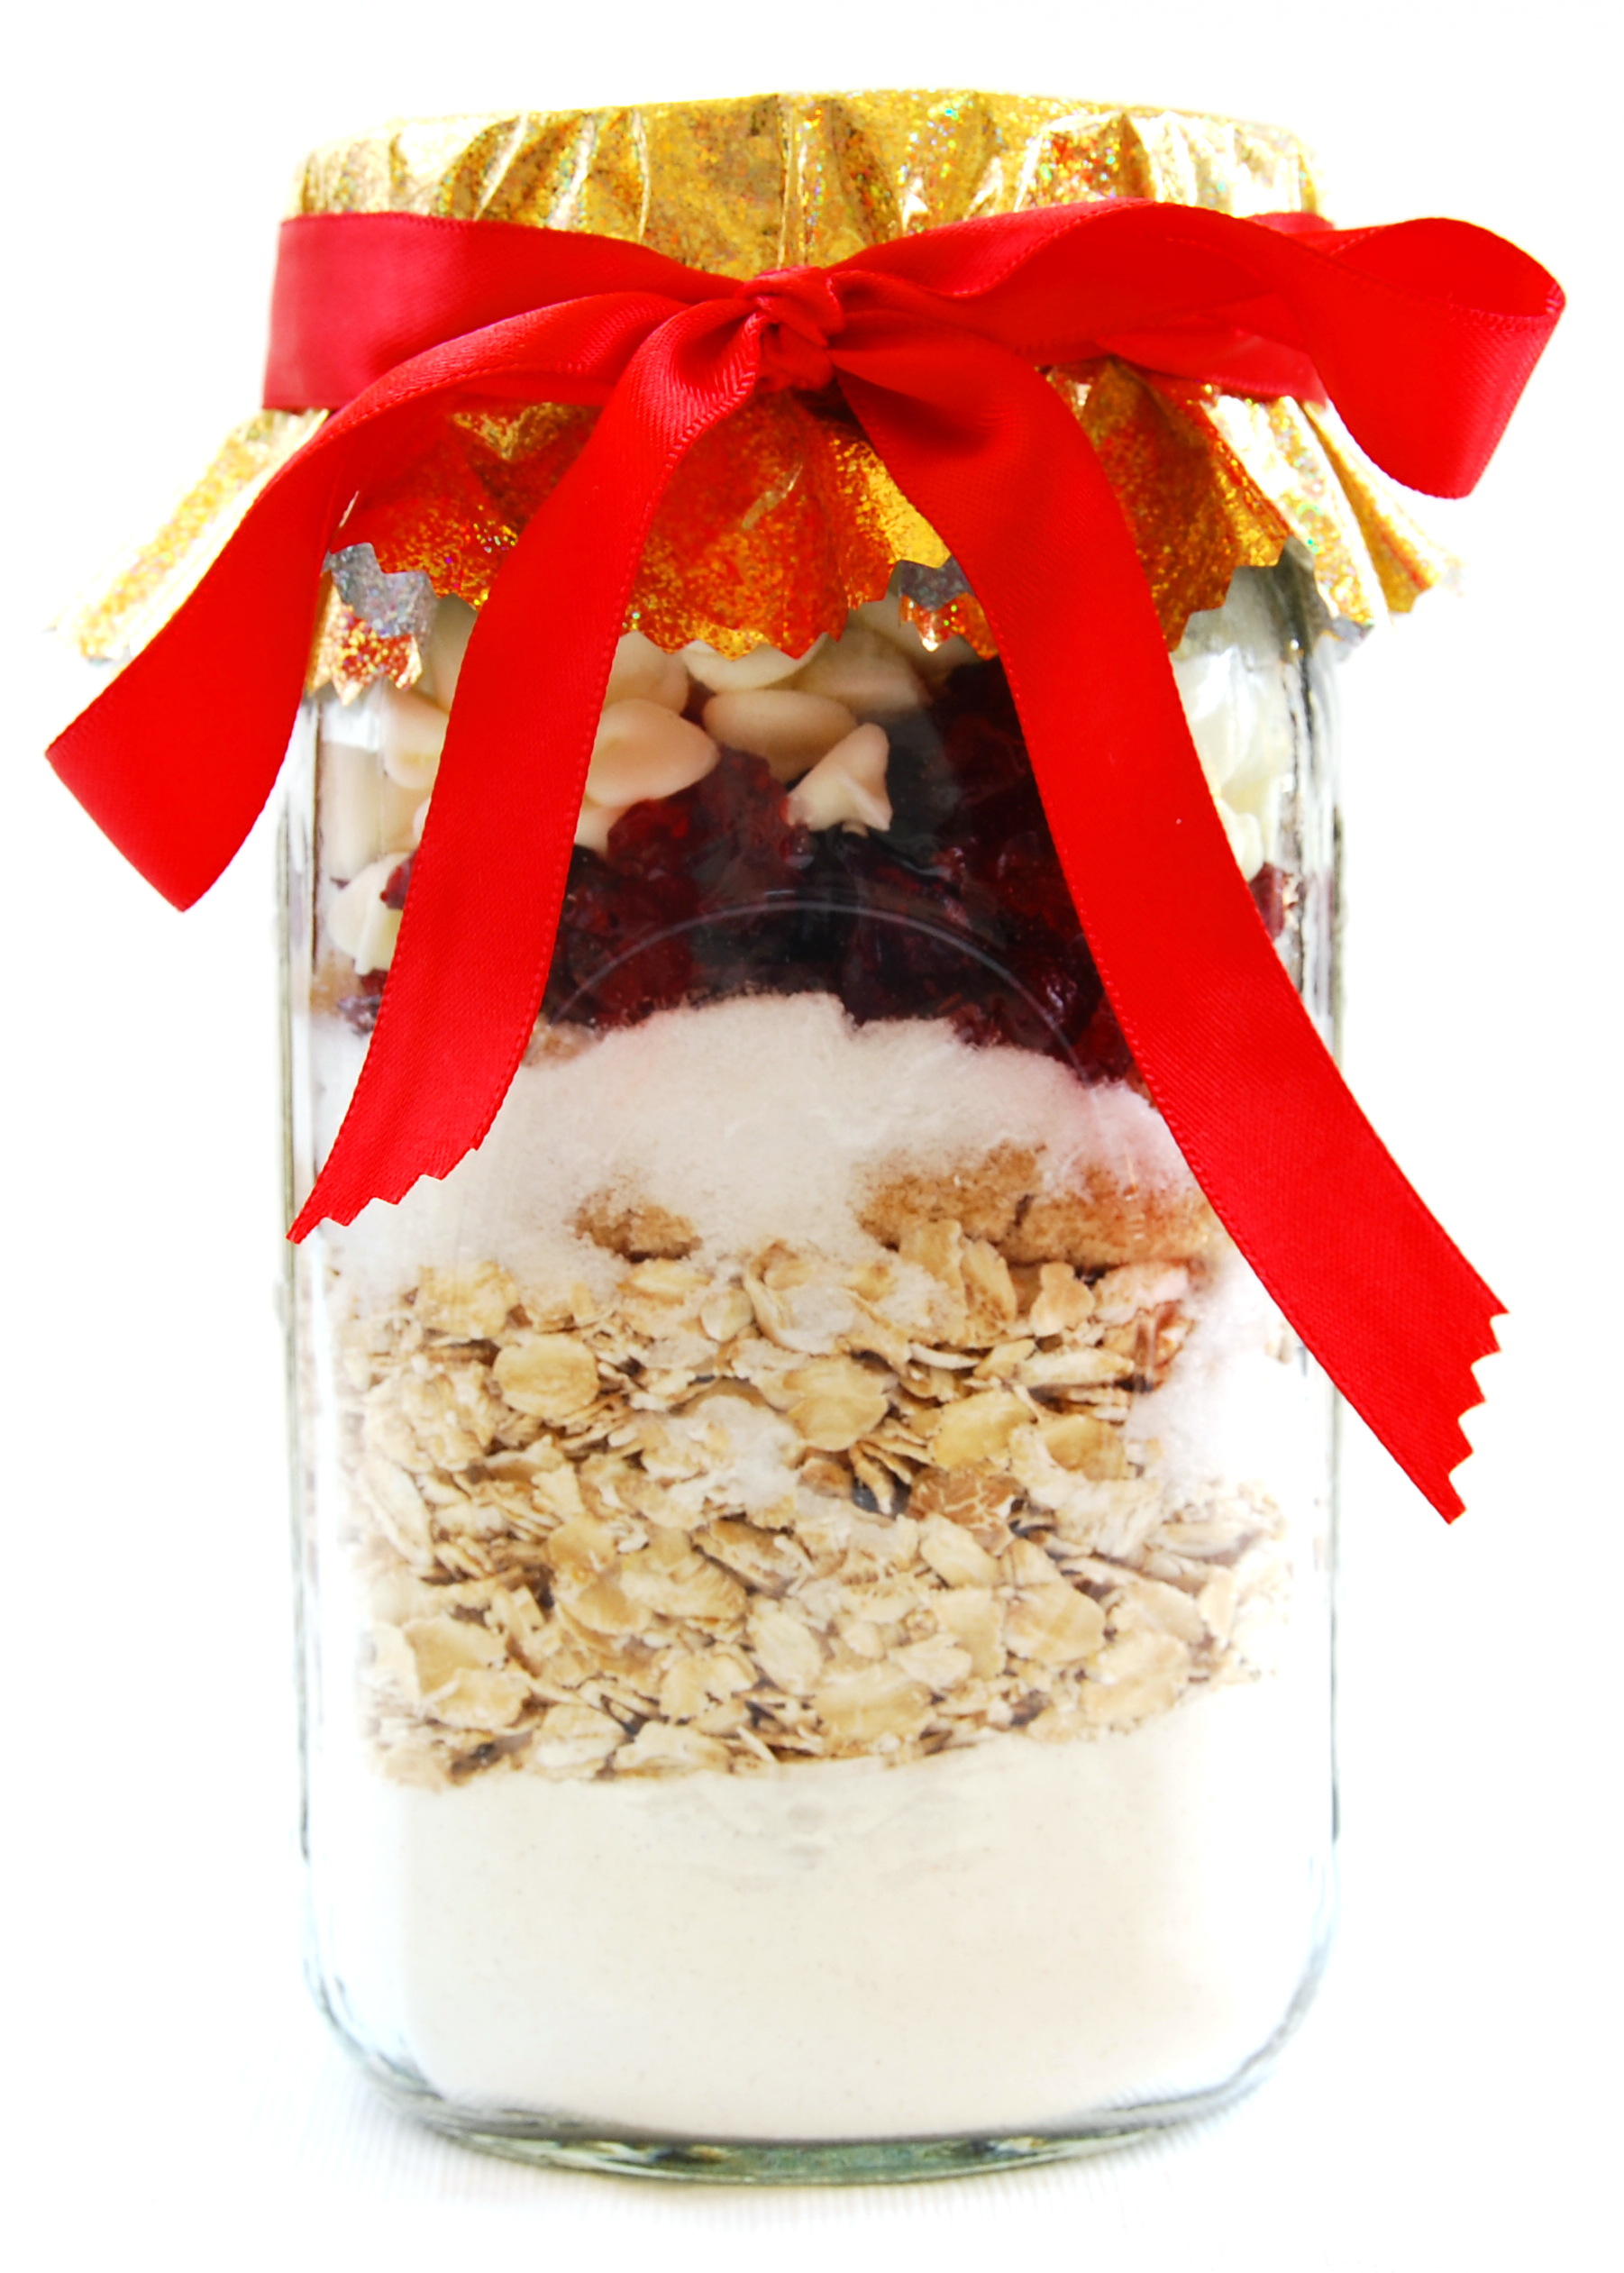 Cranberry-Oatmeal Cookie Mix. Notice how the covering is placed on top ...